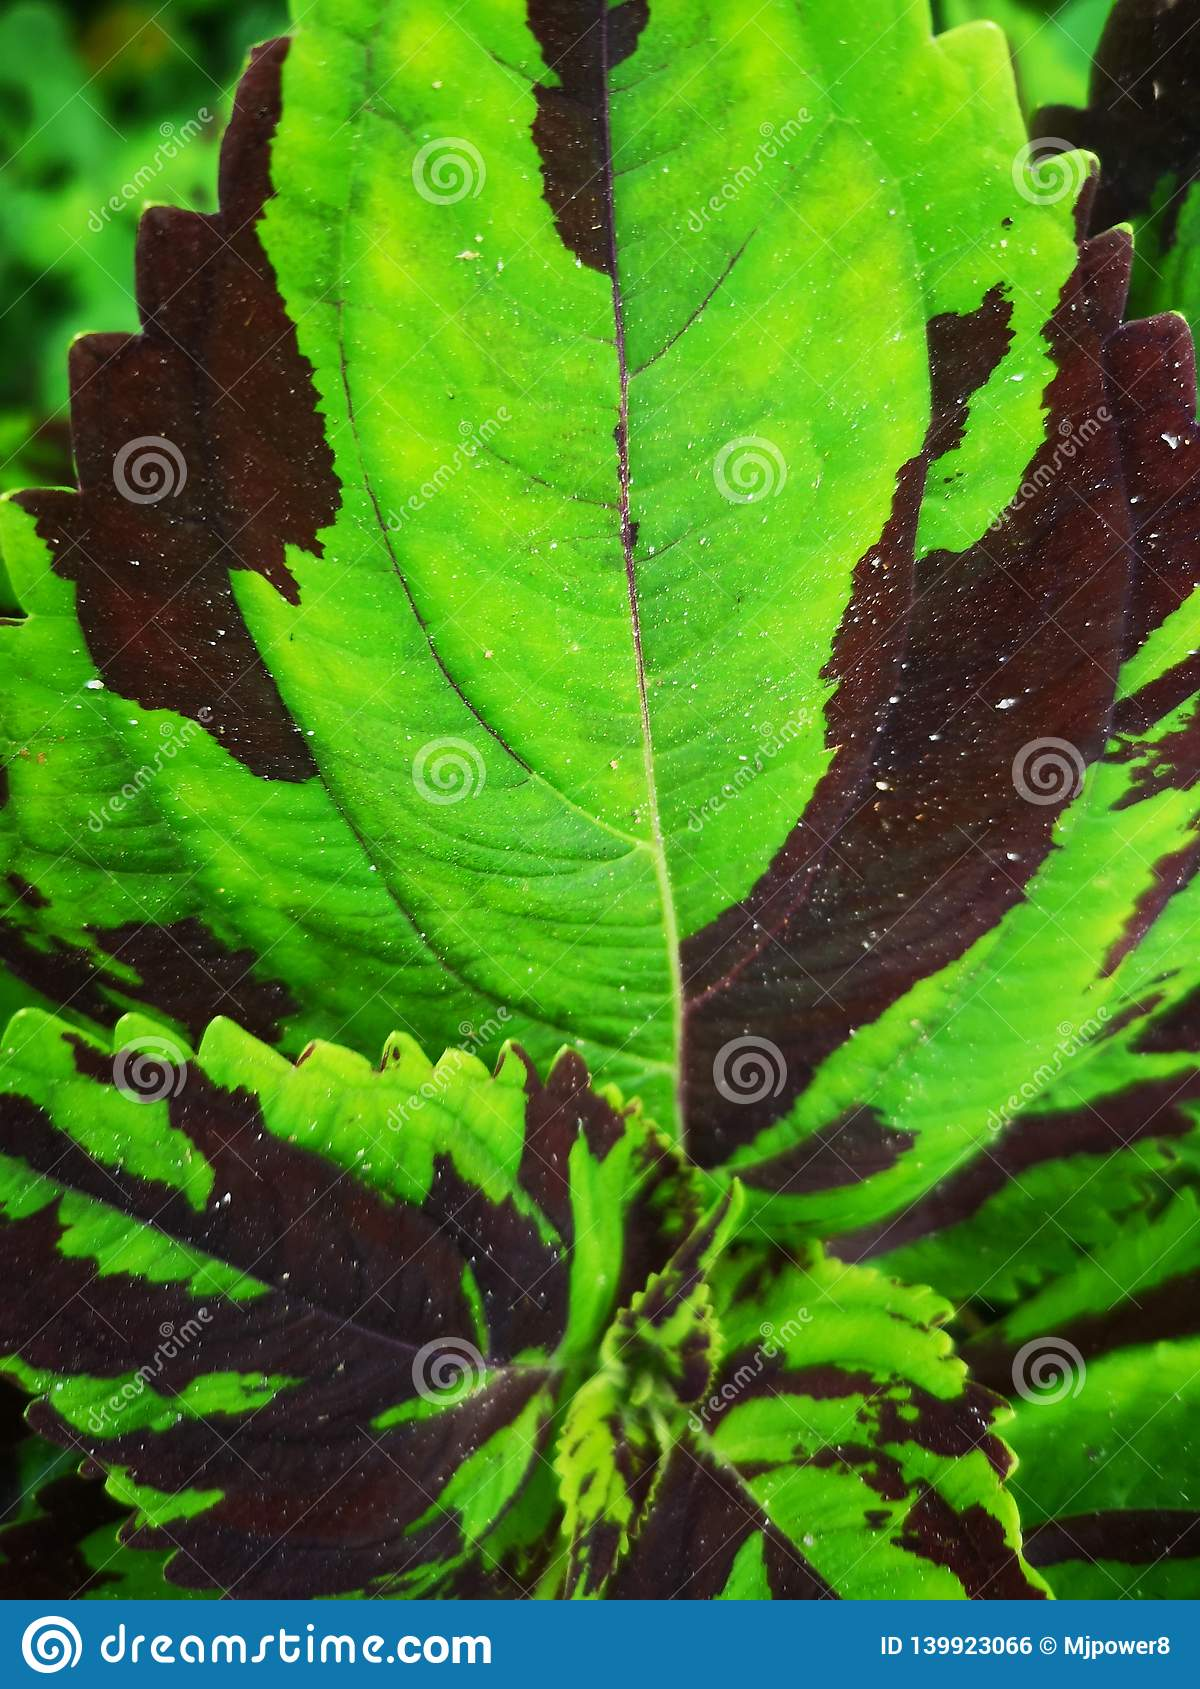 Green And Brown Tropical Leaf Background Stock Photo